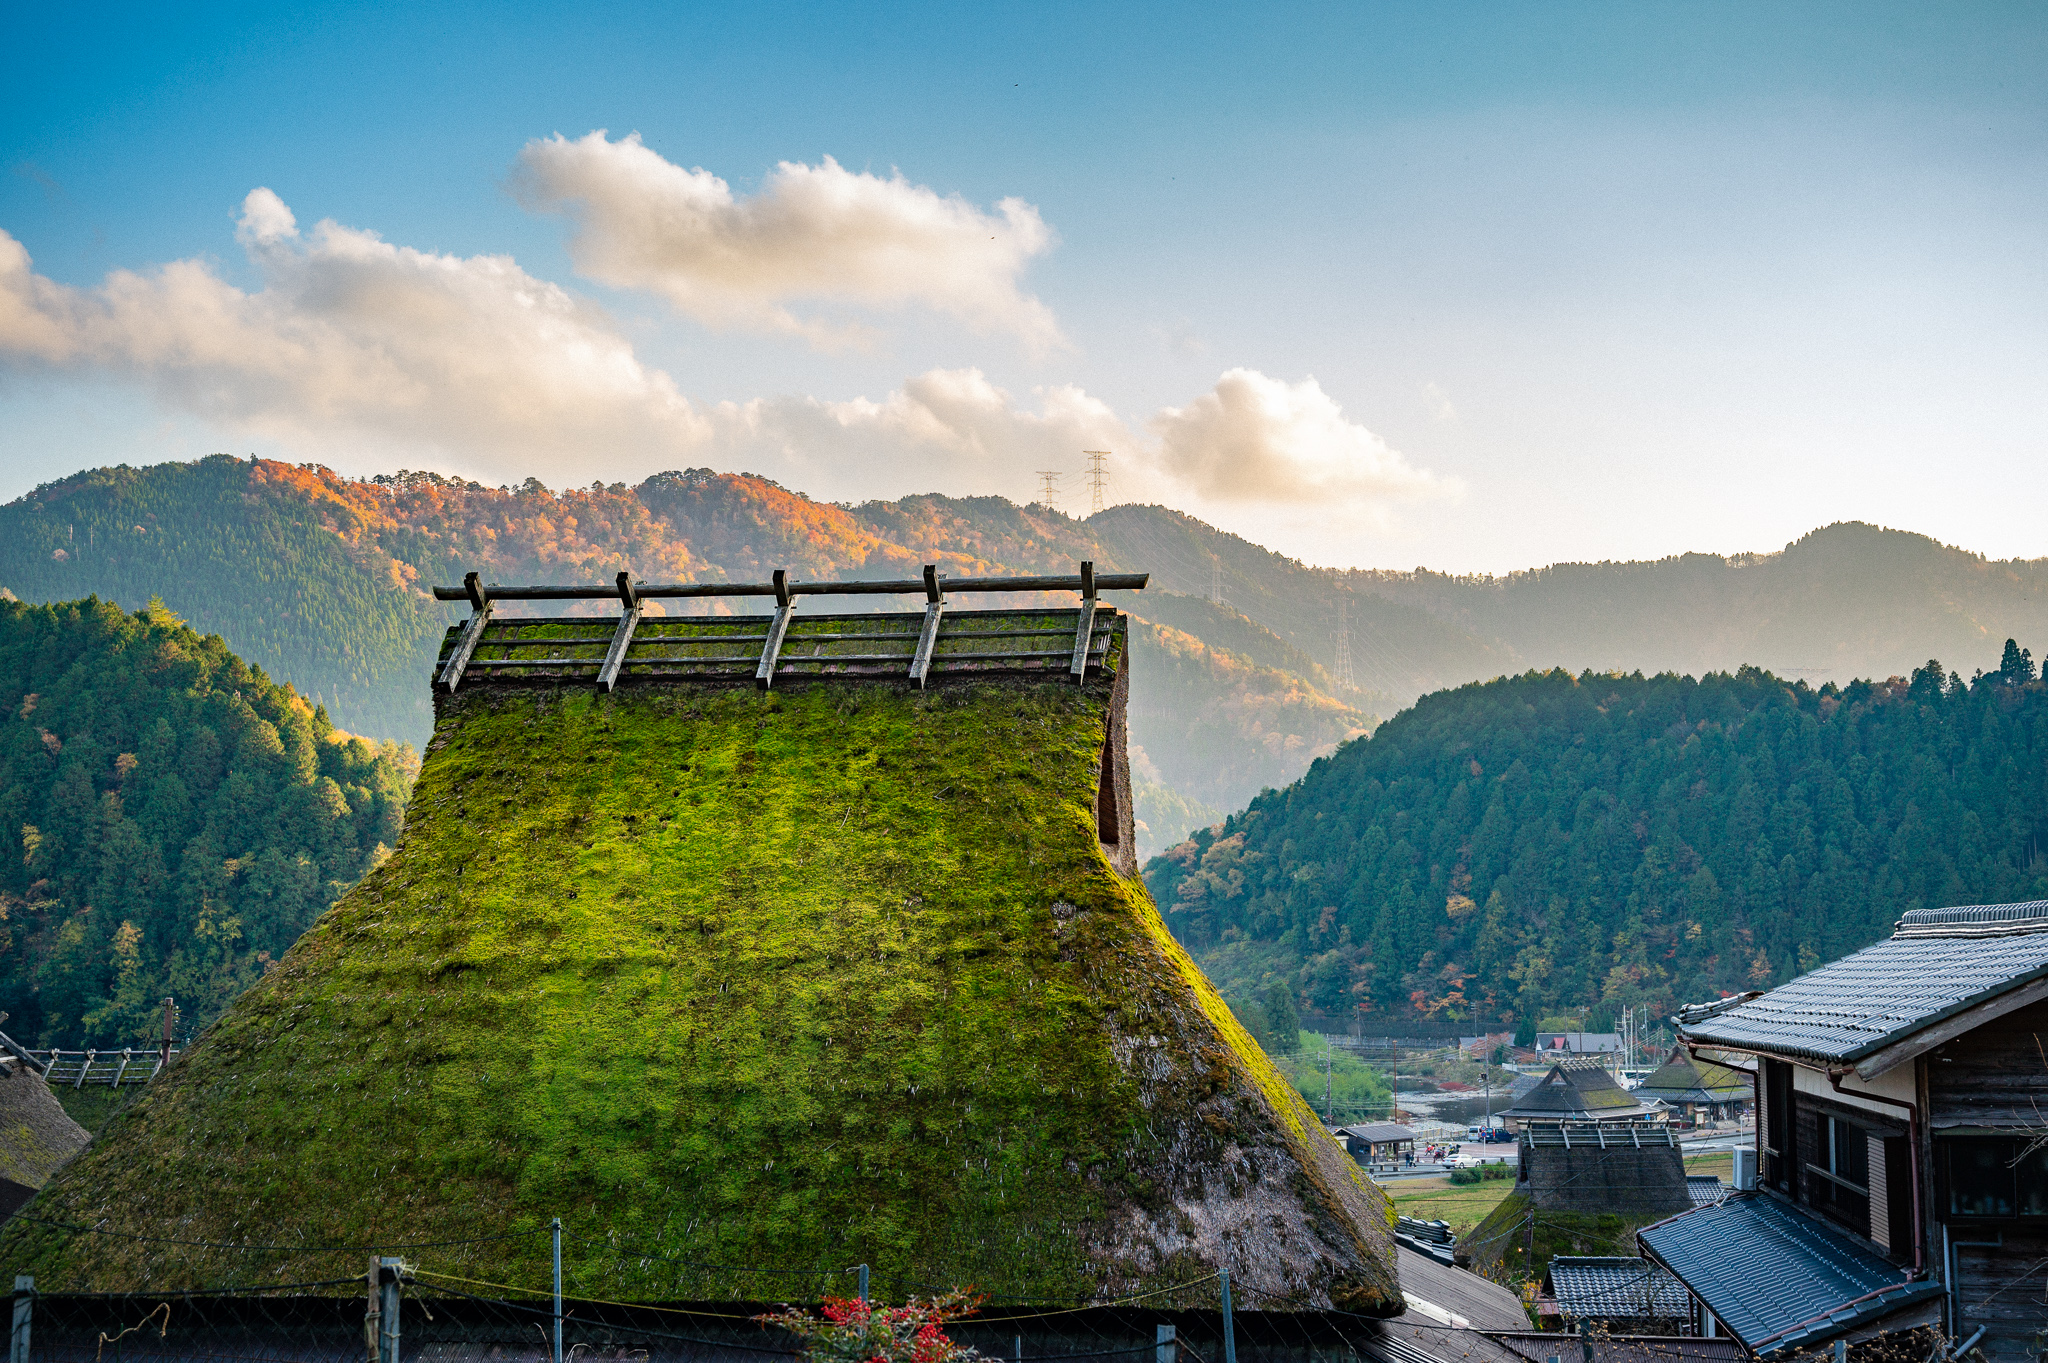 Kayabuki: The Tradition of Thatched Roof Houses in Japan Near Kyoto